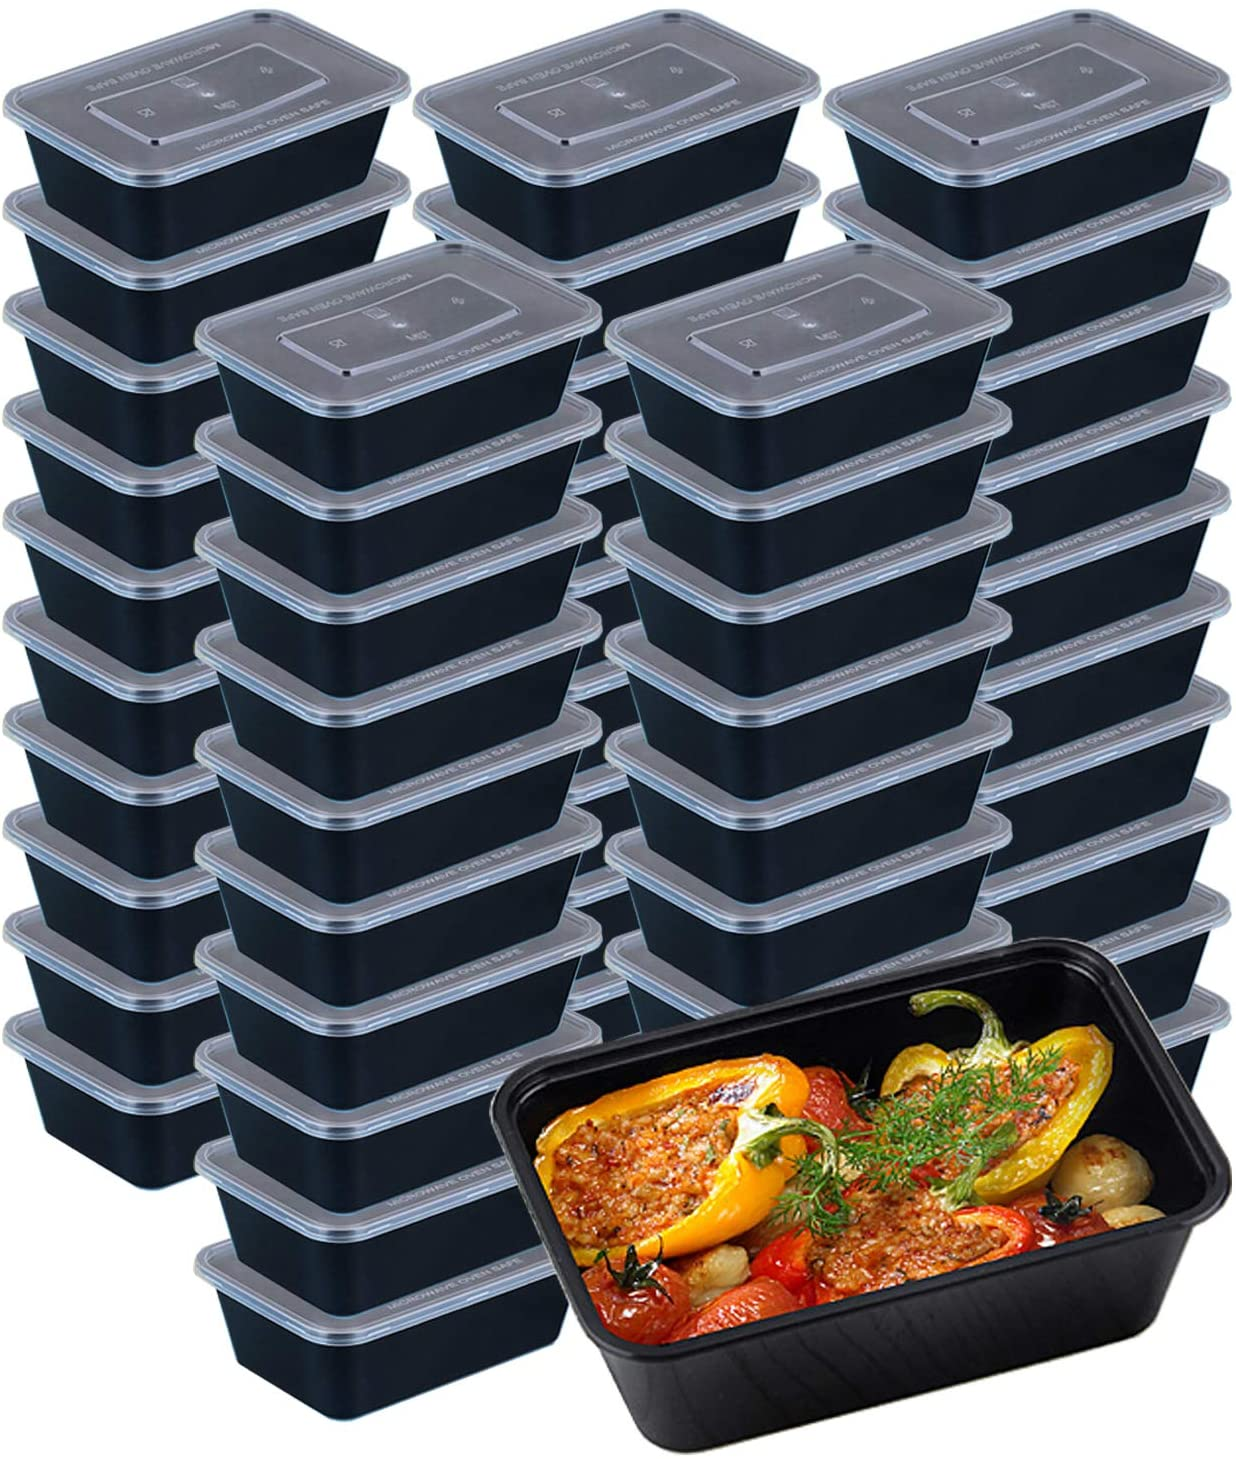 50 Pack Food Storage Containers, Disposable Plastic Bento Boxes Meal Prep Containers with Lids for Microwavable Freezer Safe (750ml/25oz)